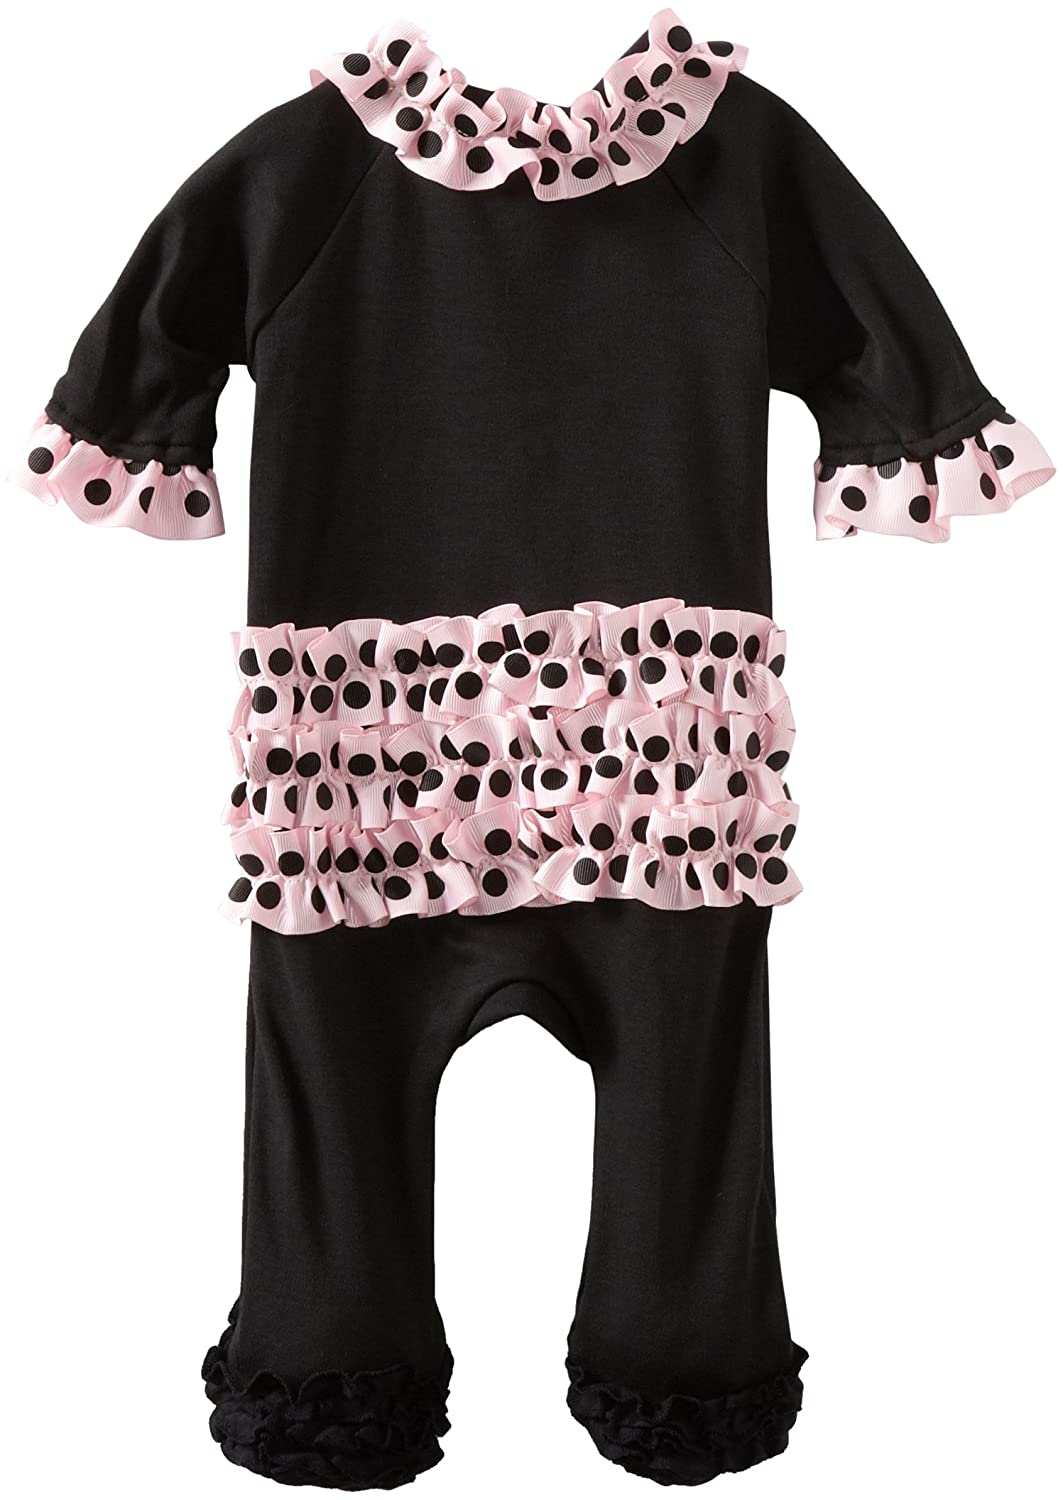 Детская пижама Mud Pie Baby Footed Sleeper with Ruffles, Black/Pink, 0 - 6 Months